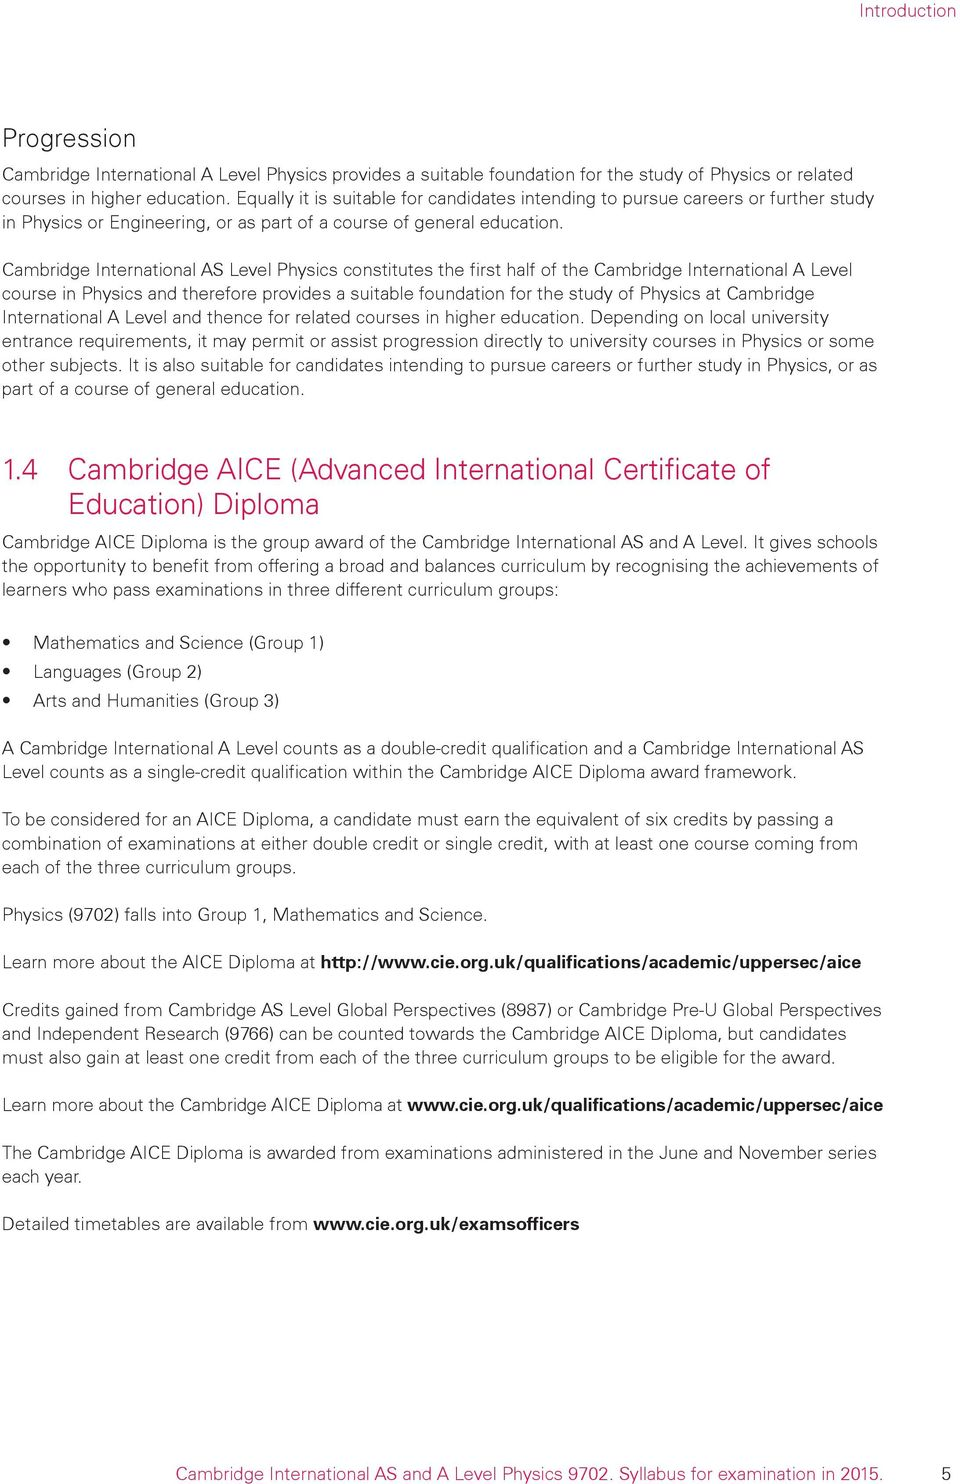 Cambridge International AS Level Physics Constitutes The First Half Of A Course